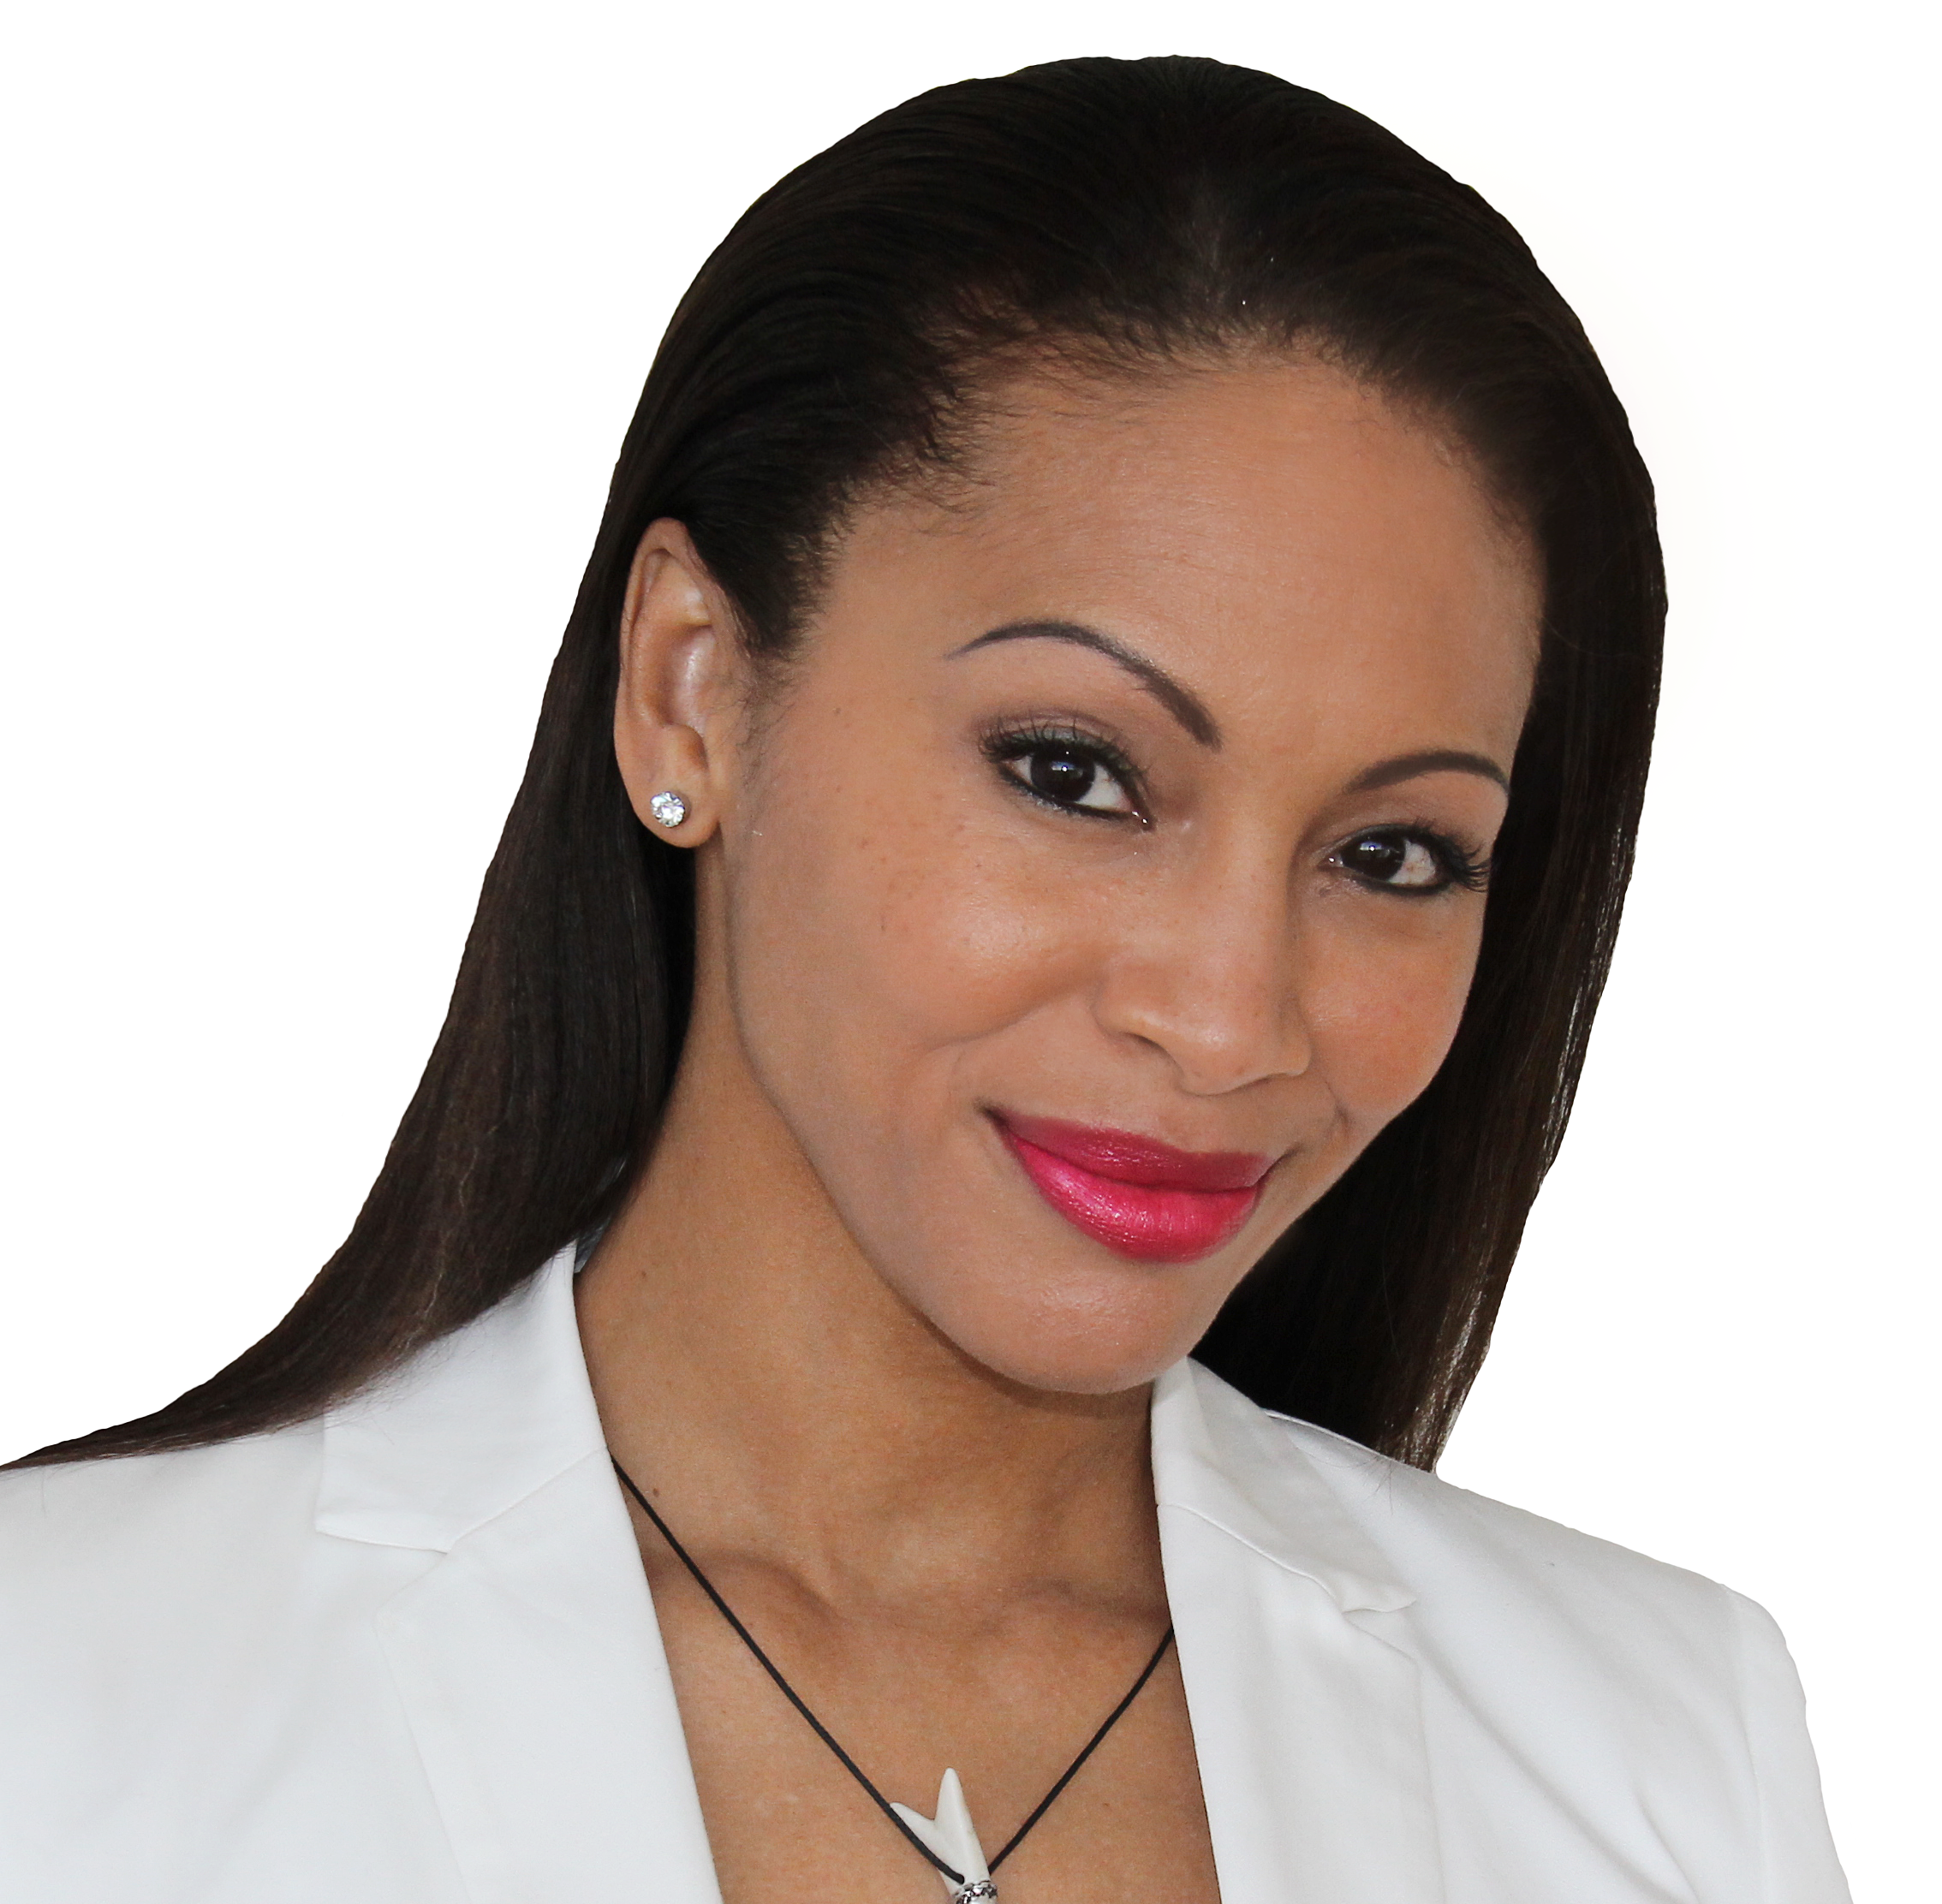 Dr. Andrea Pennington, founding partner Make Your Mark Global